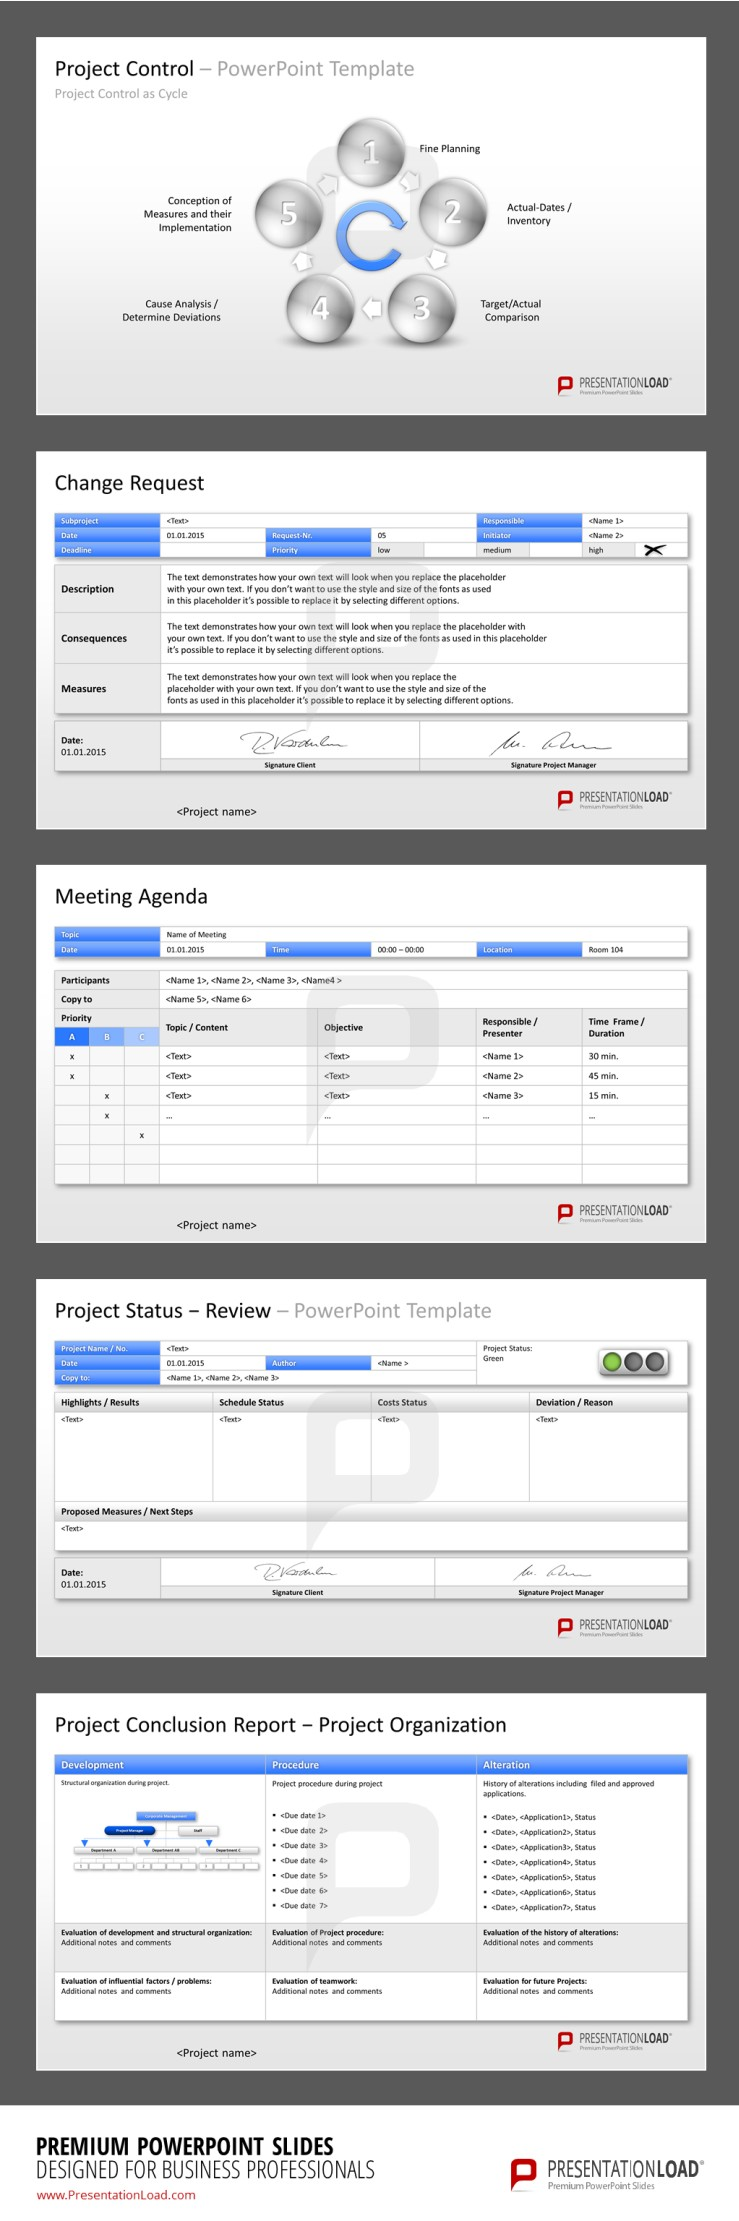 Project Management PowerPoint Templates to keep the